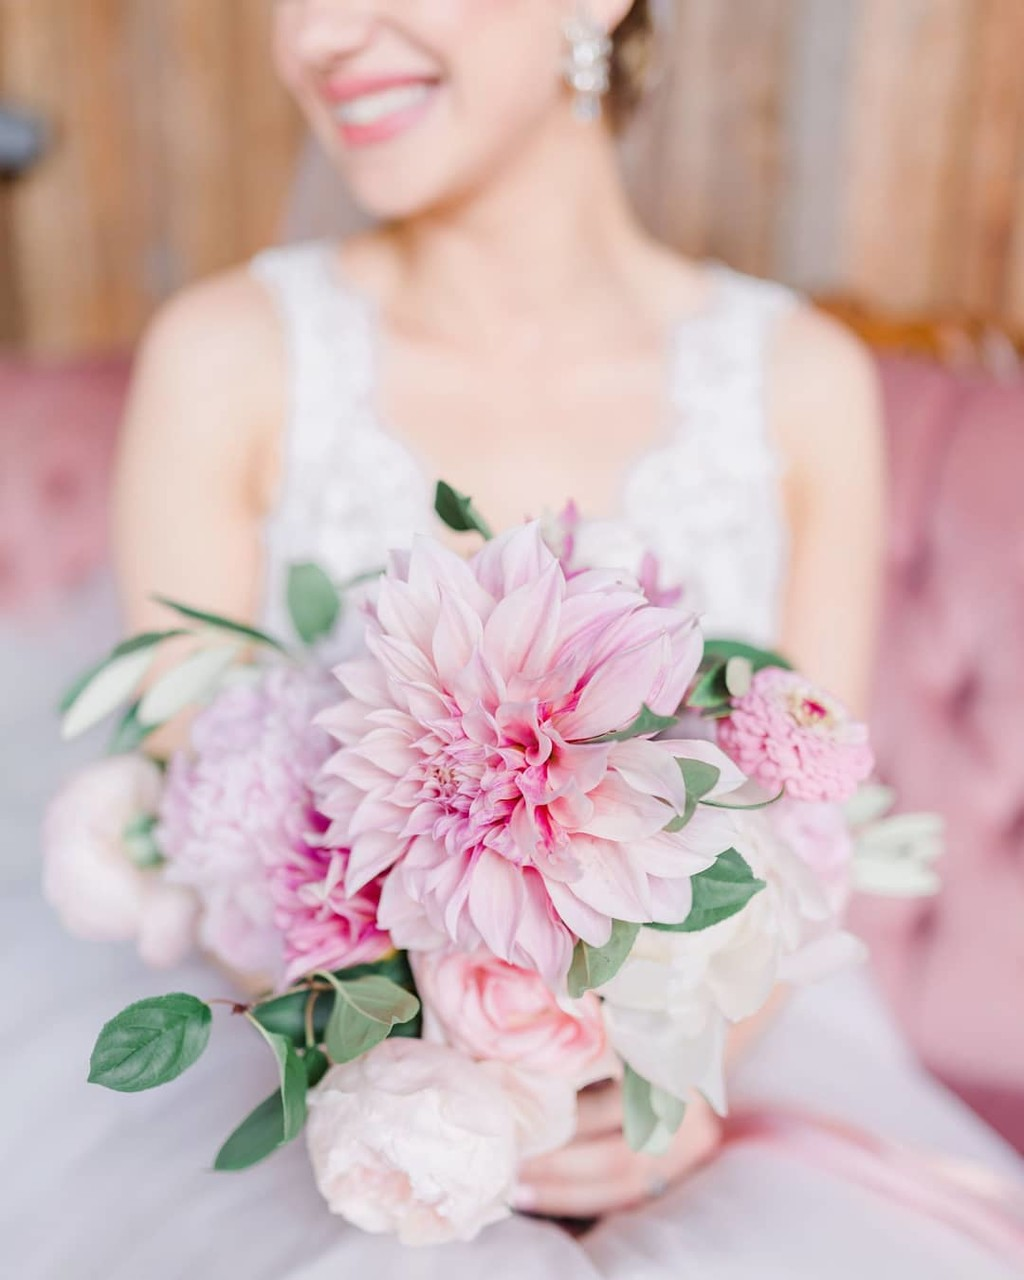 Going through Junophoto's portfolio to add to the new website and stumble on this beautiful bouquet from last year by